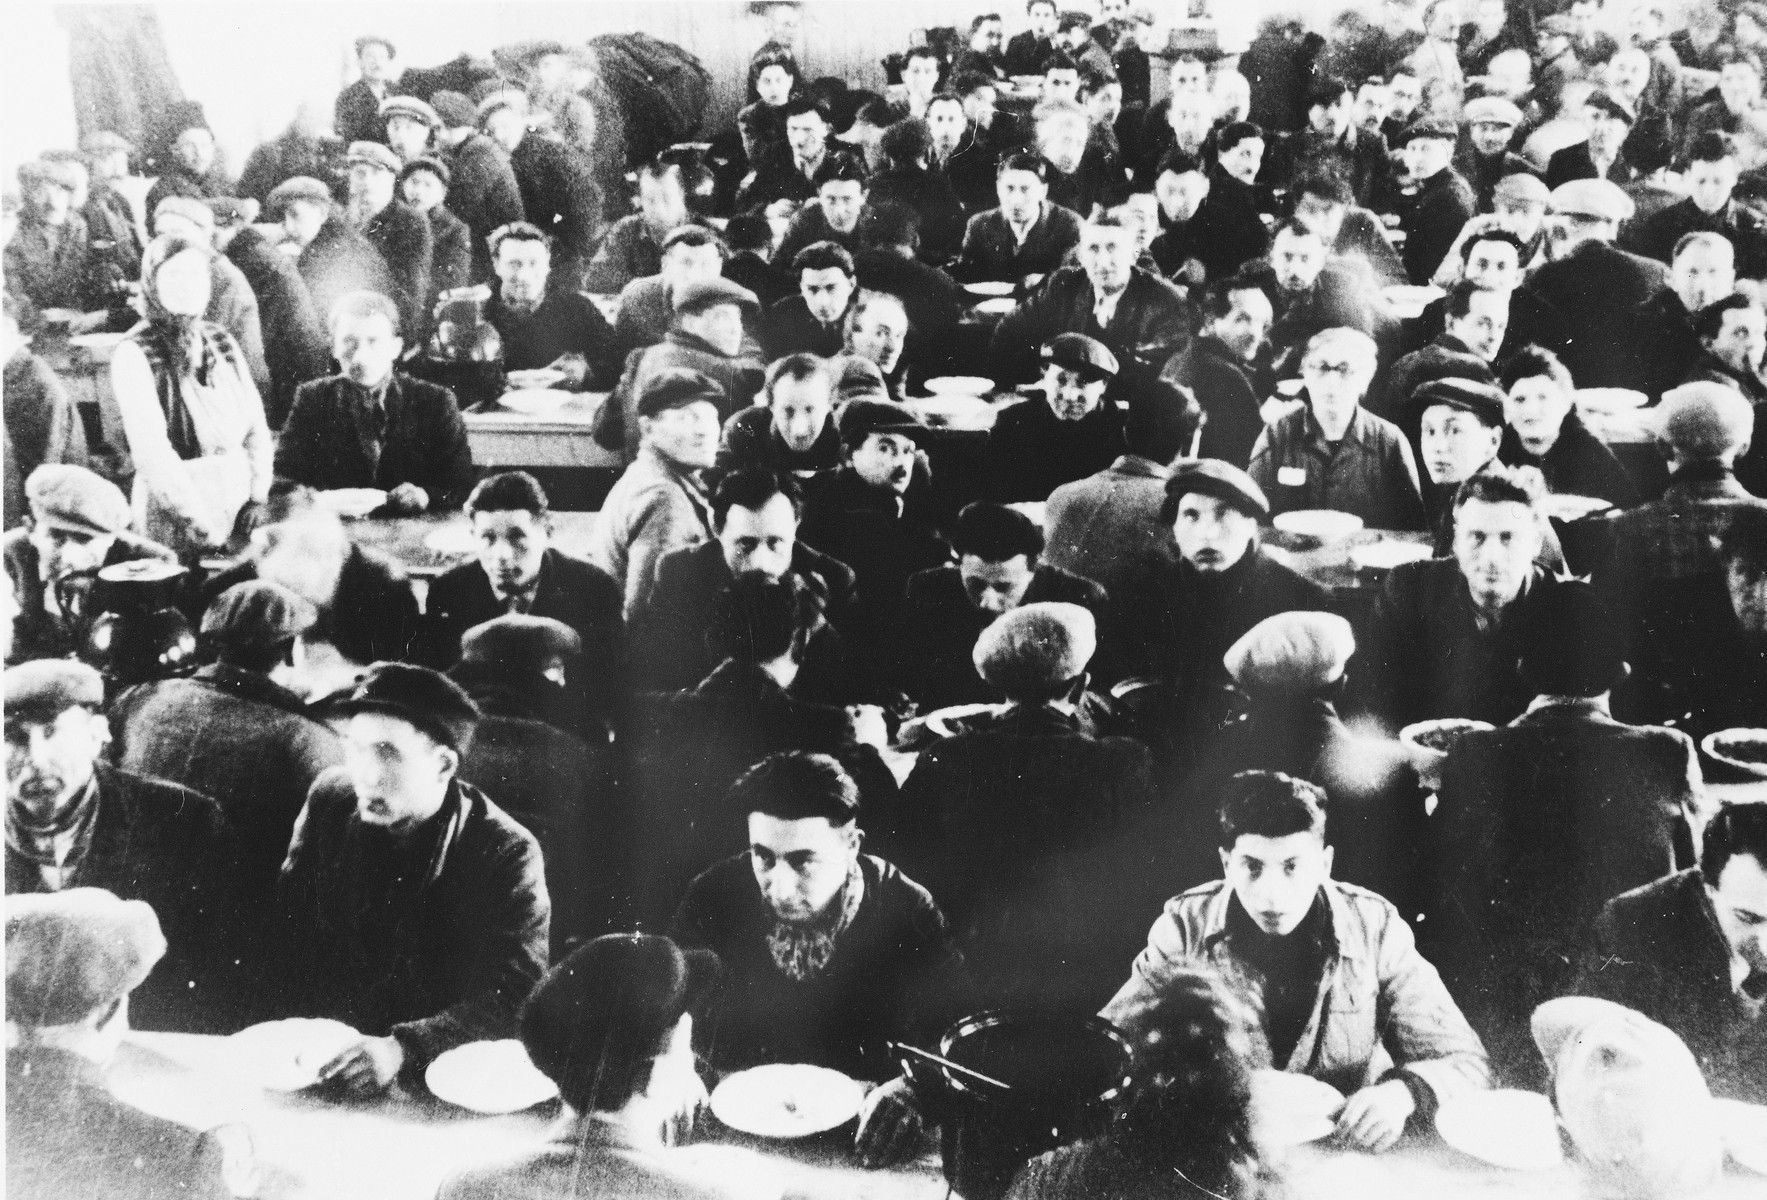 Prisoners eat in the cafeteria at a Slovak labor camp.